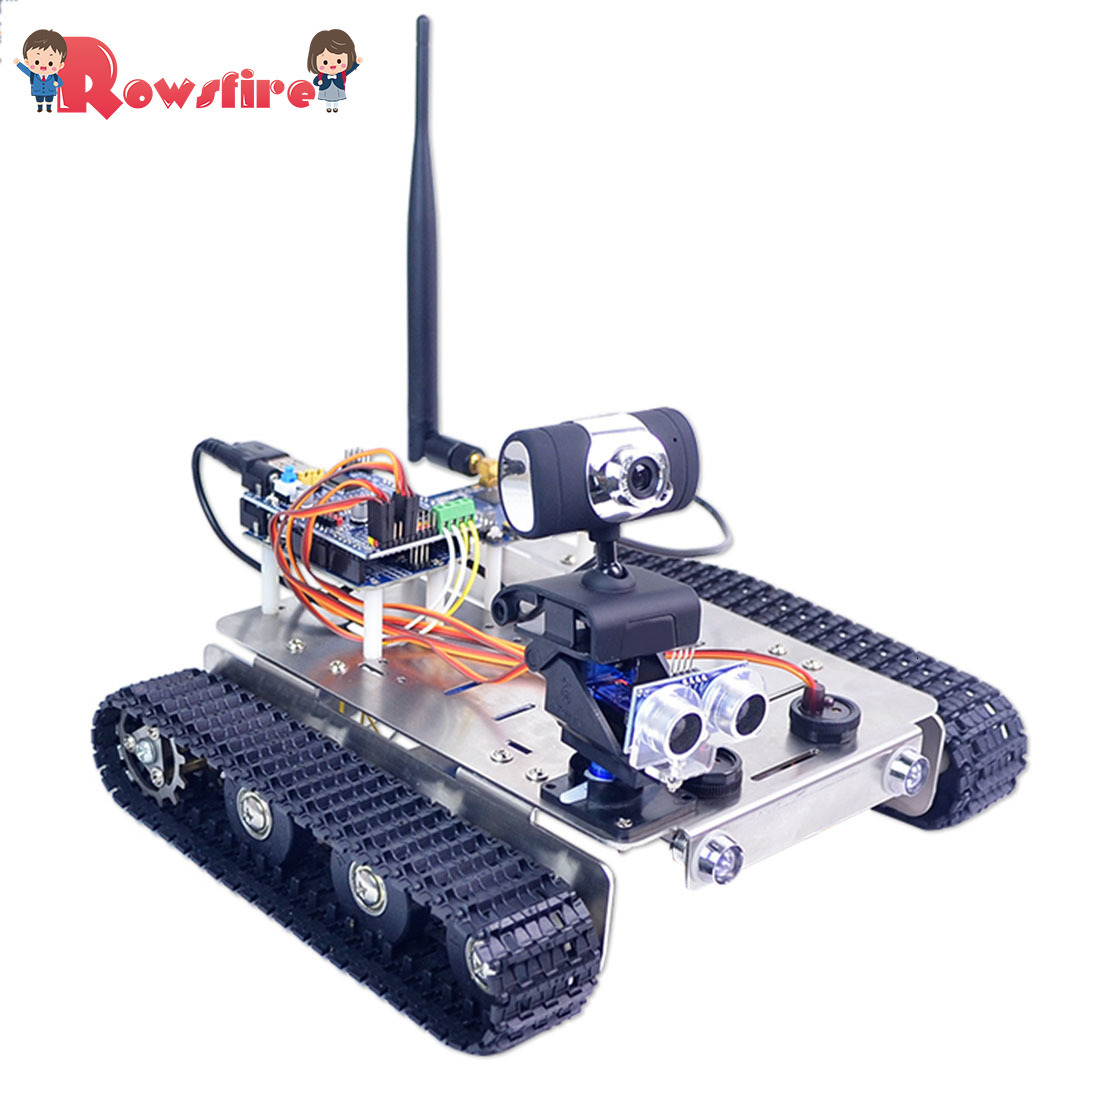 DIY Wifi Stainless Steel Chassis Track Tank Steam Educational Car With Graphic Programming XR BLOCK Linux Toy Games